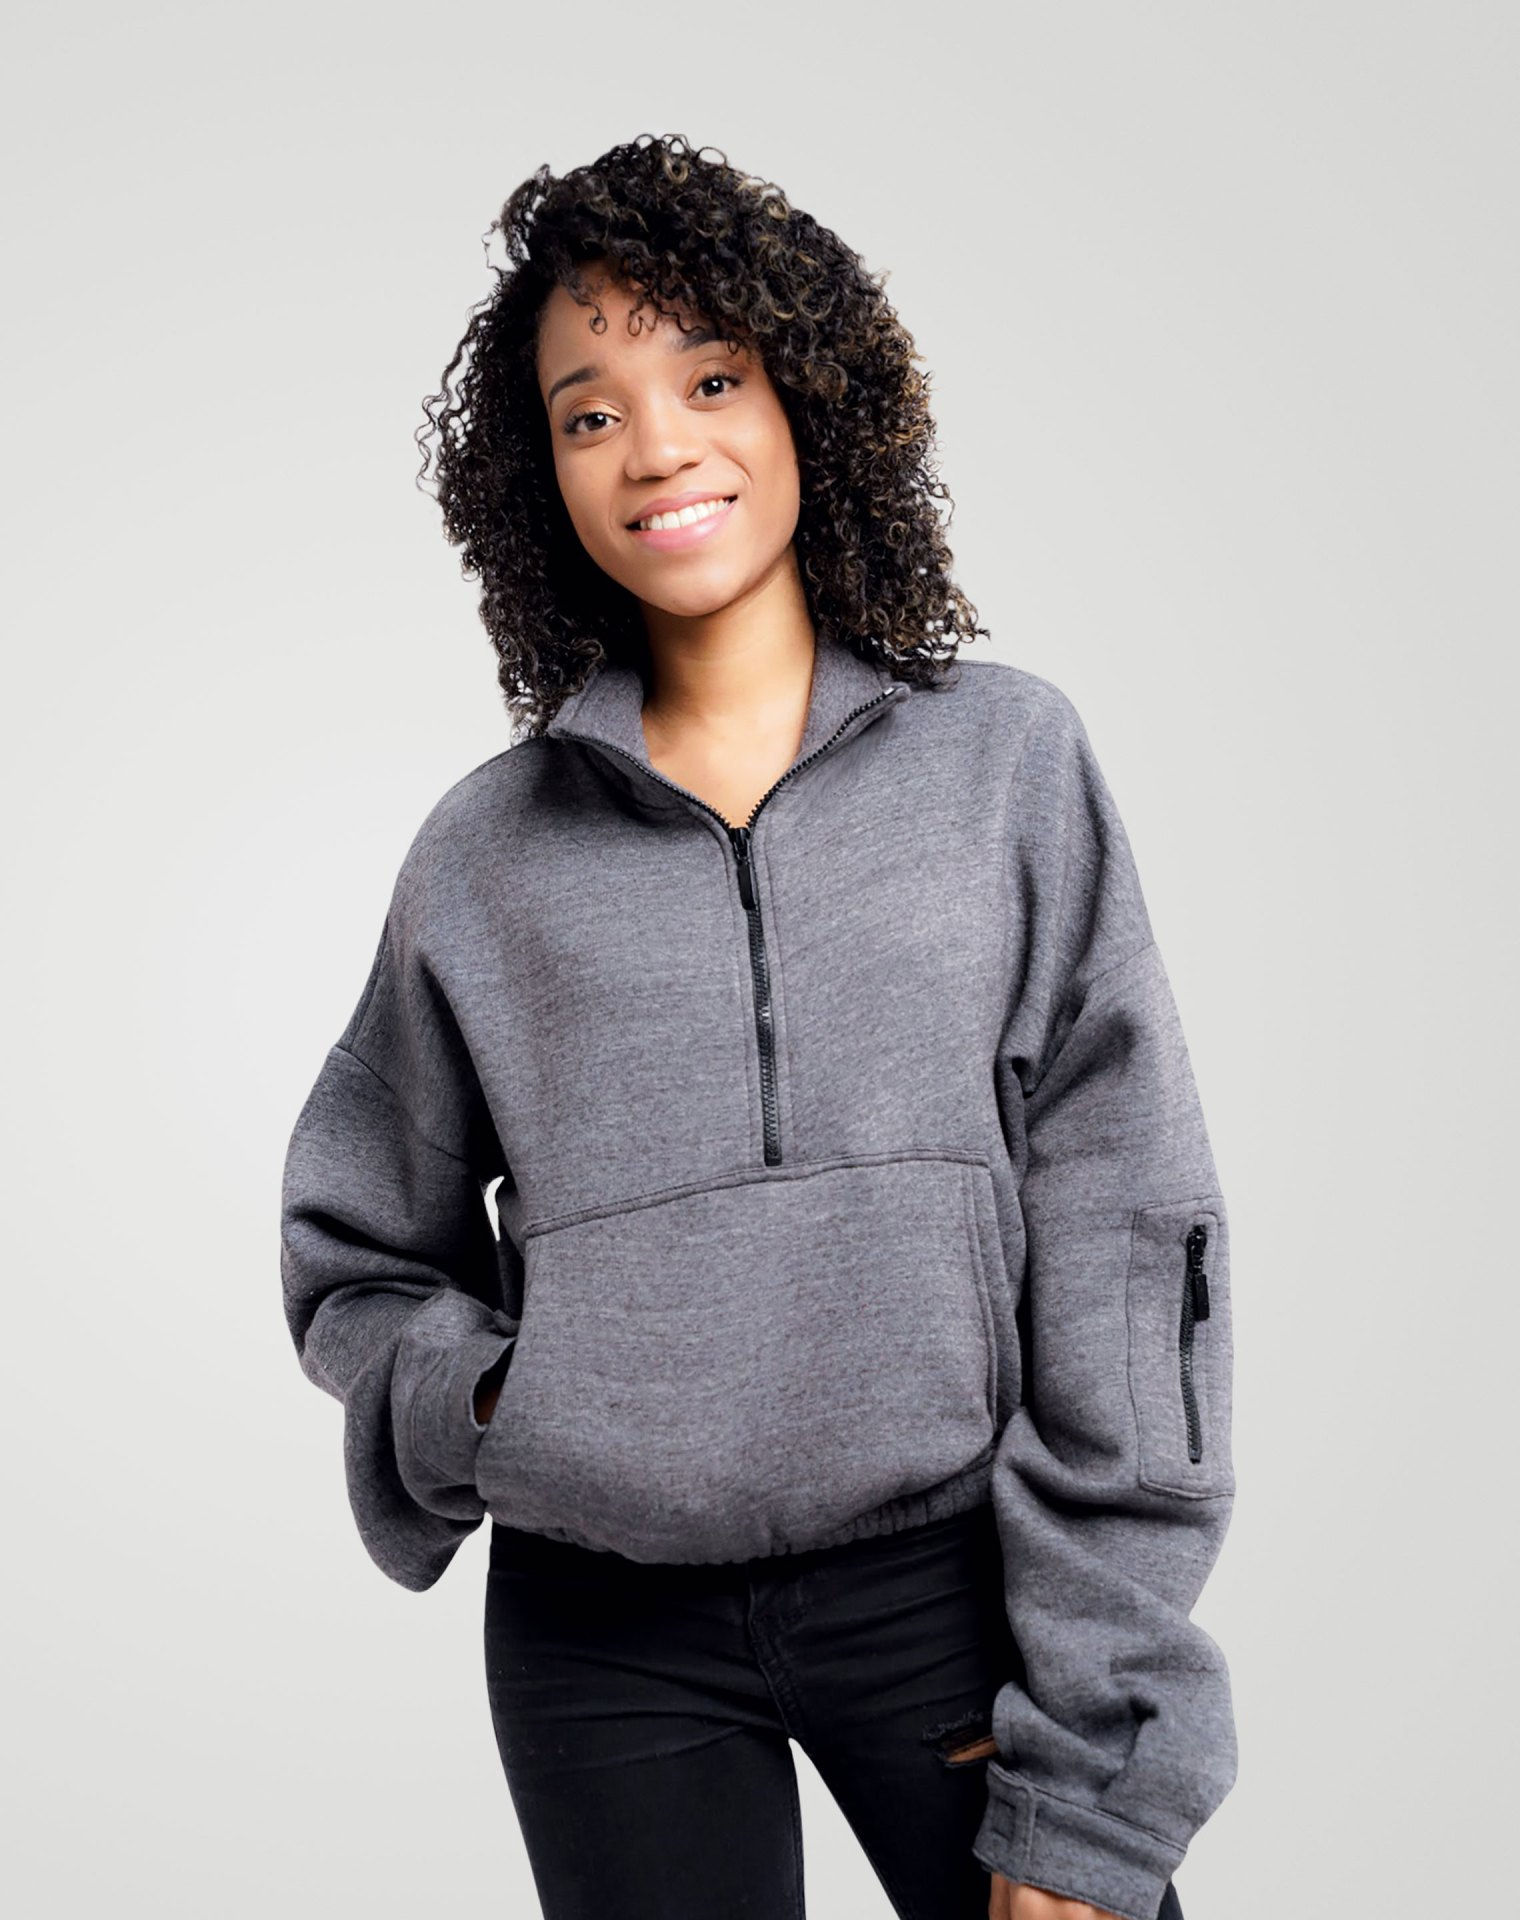 Image 2 of Womens High Neck Crop Top Zipper Pullover color Grey and sizes 8,10,12 from Noroze